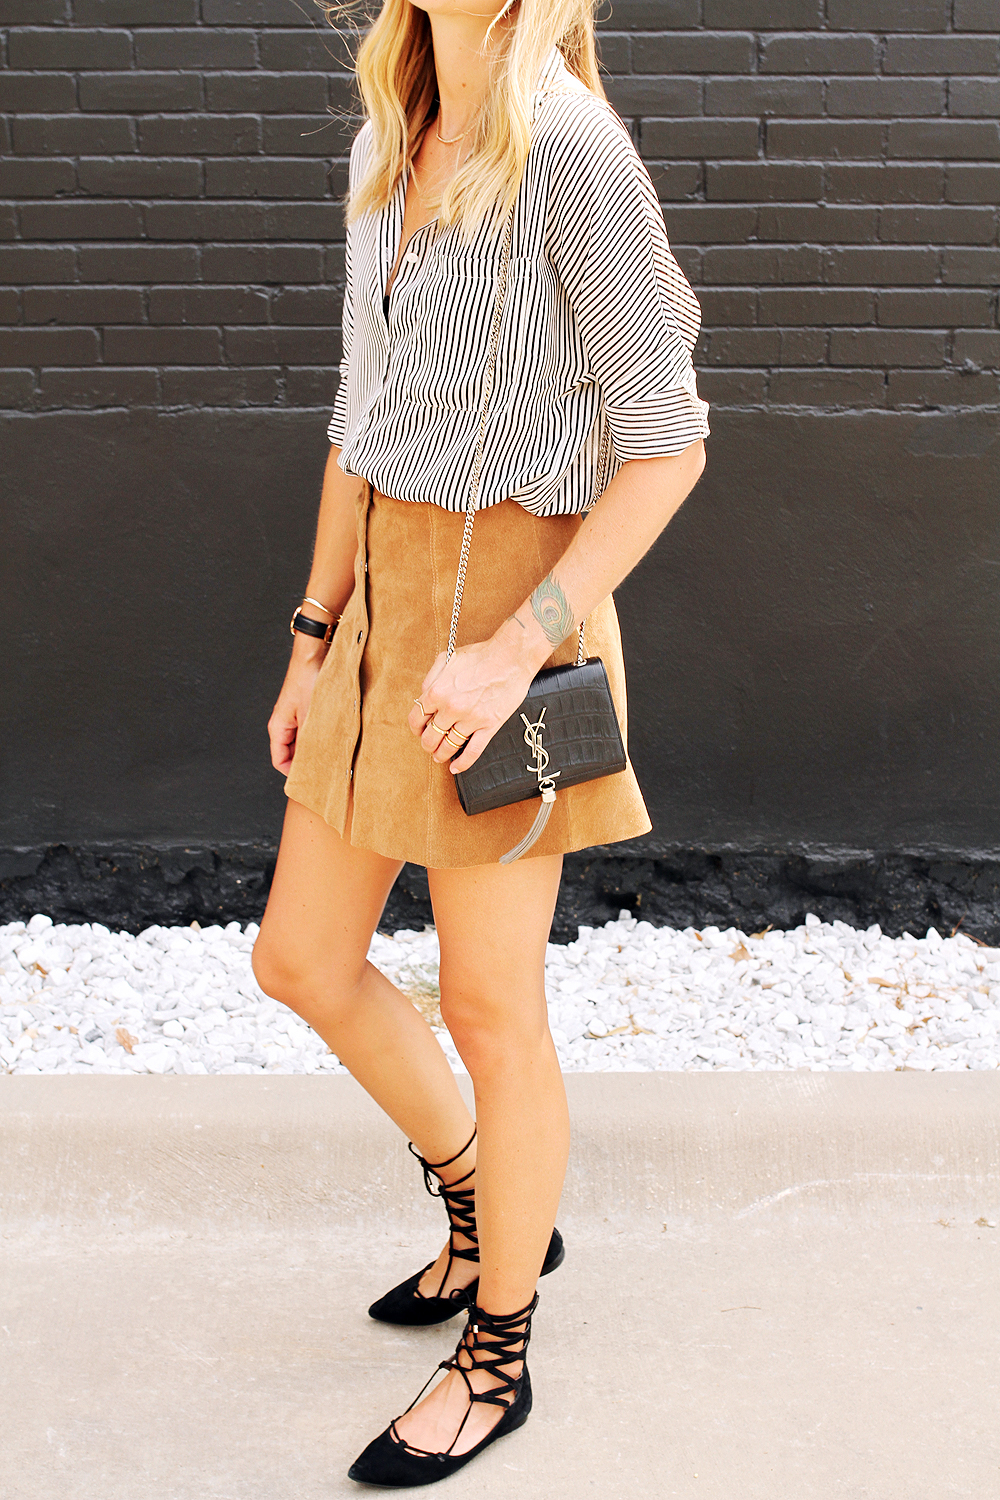 fashion-jackson-jeffery-campbell-black-lace-up-flats-black-and-white-stripe-shirt-topshop-tan-suede-button-front-skirt-ysl-cassandre-crossbody-handbag